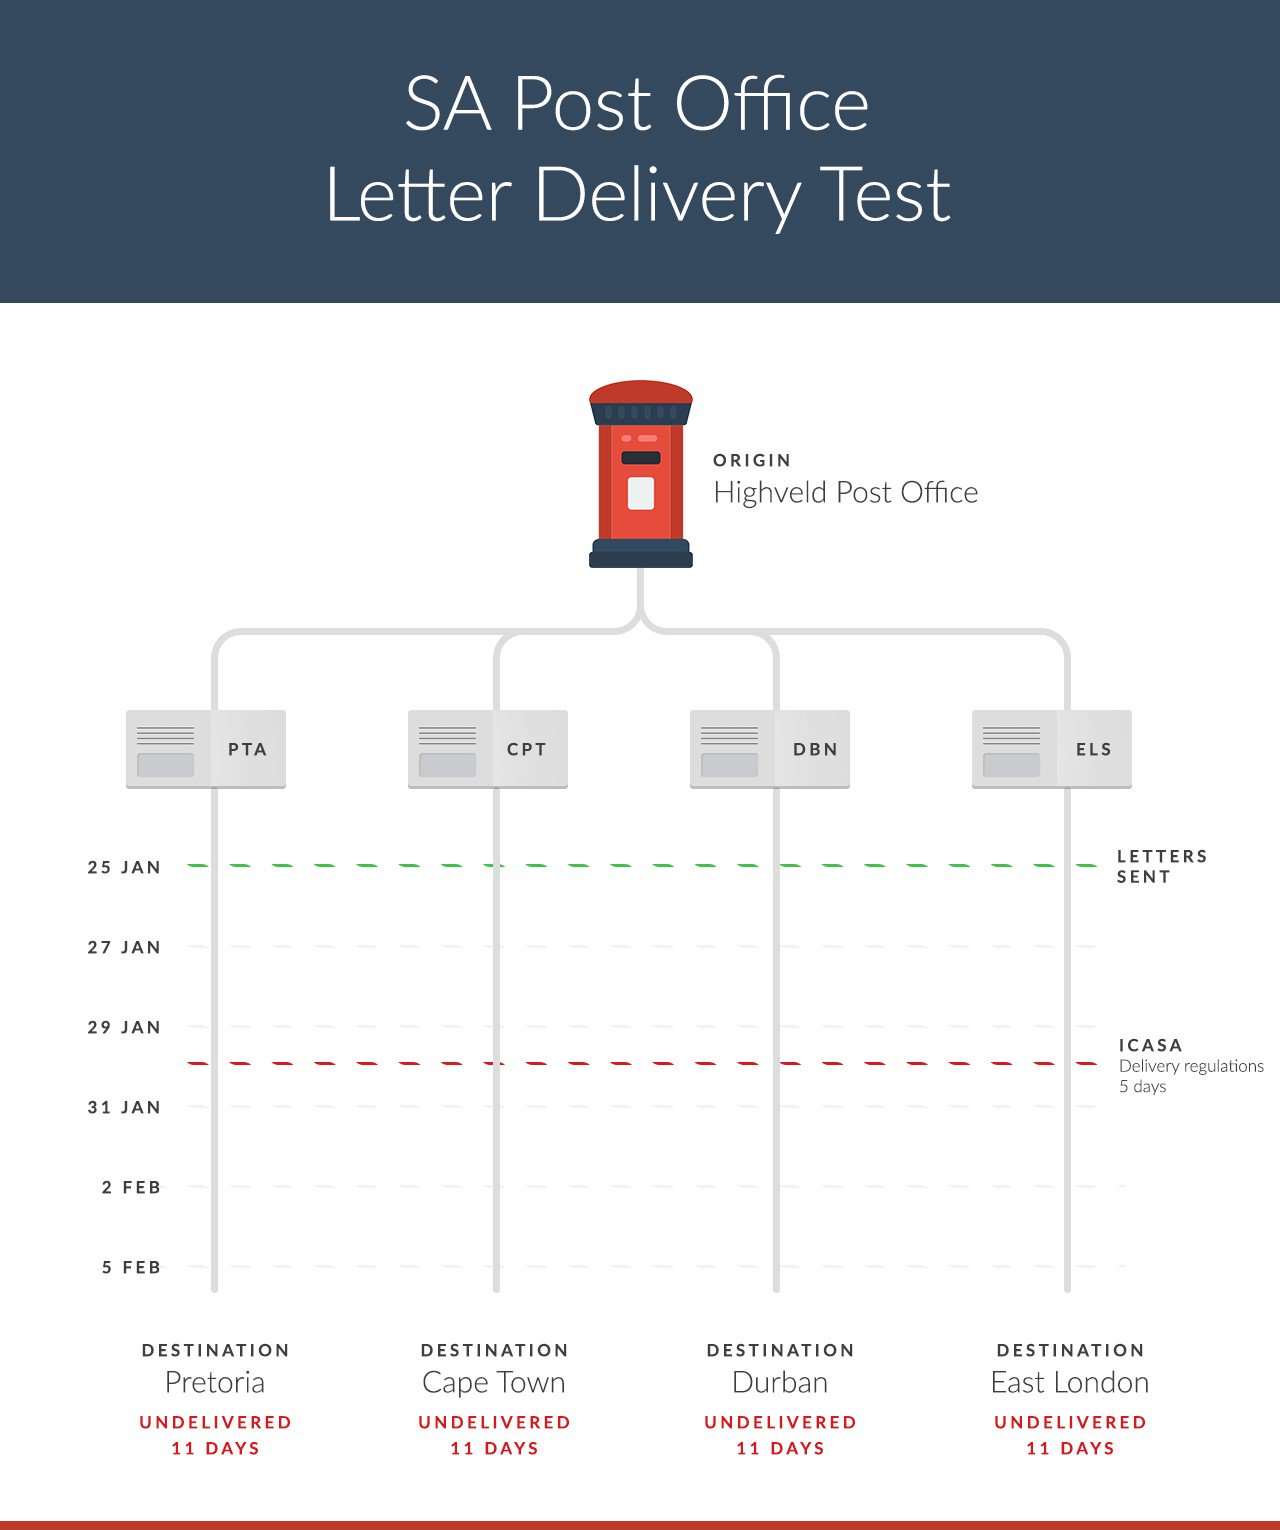 SA Post Office Letter Delivery Test